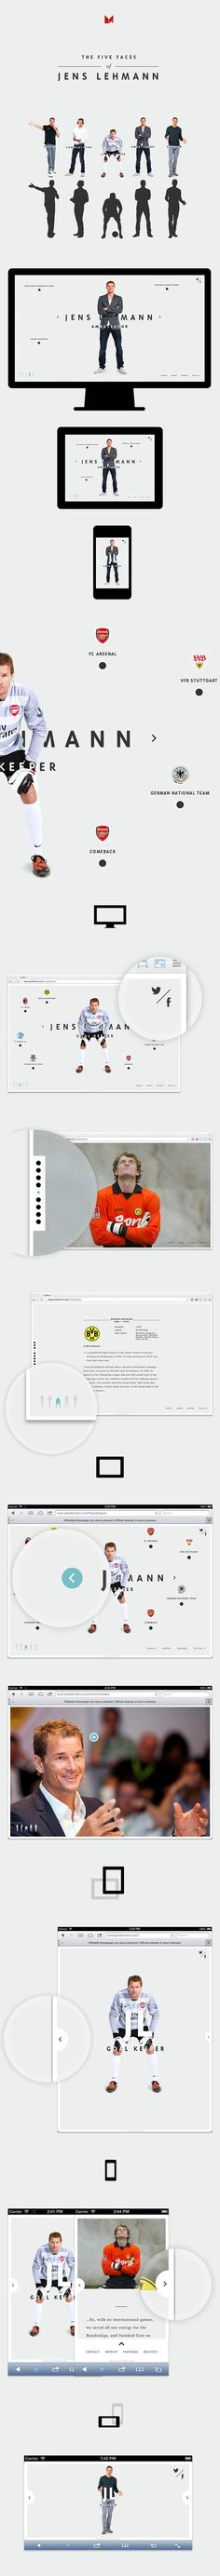 Jens Lehmann Personal Website on Behance #website #football #sebsite #web